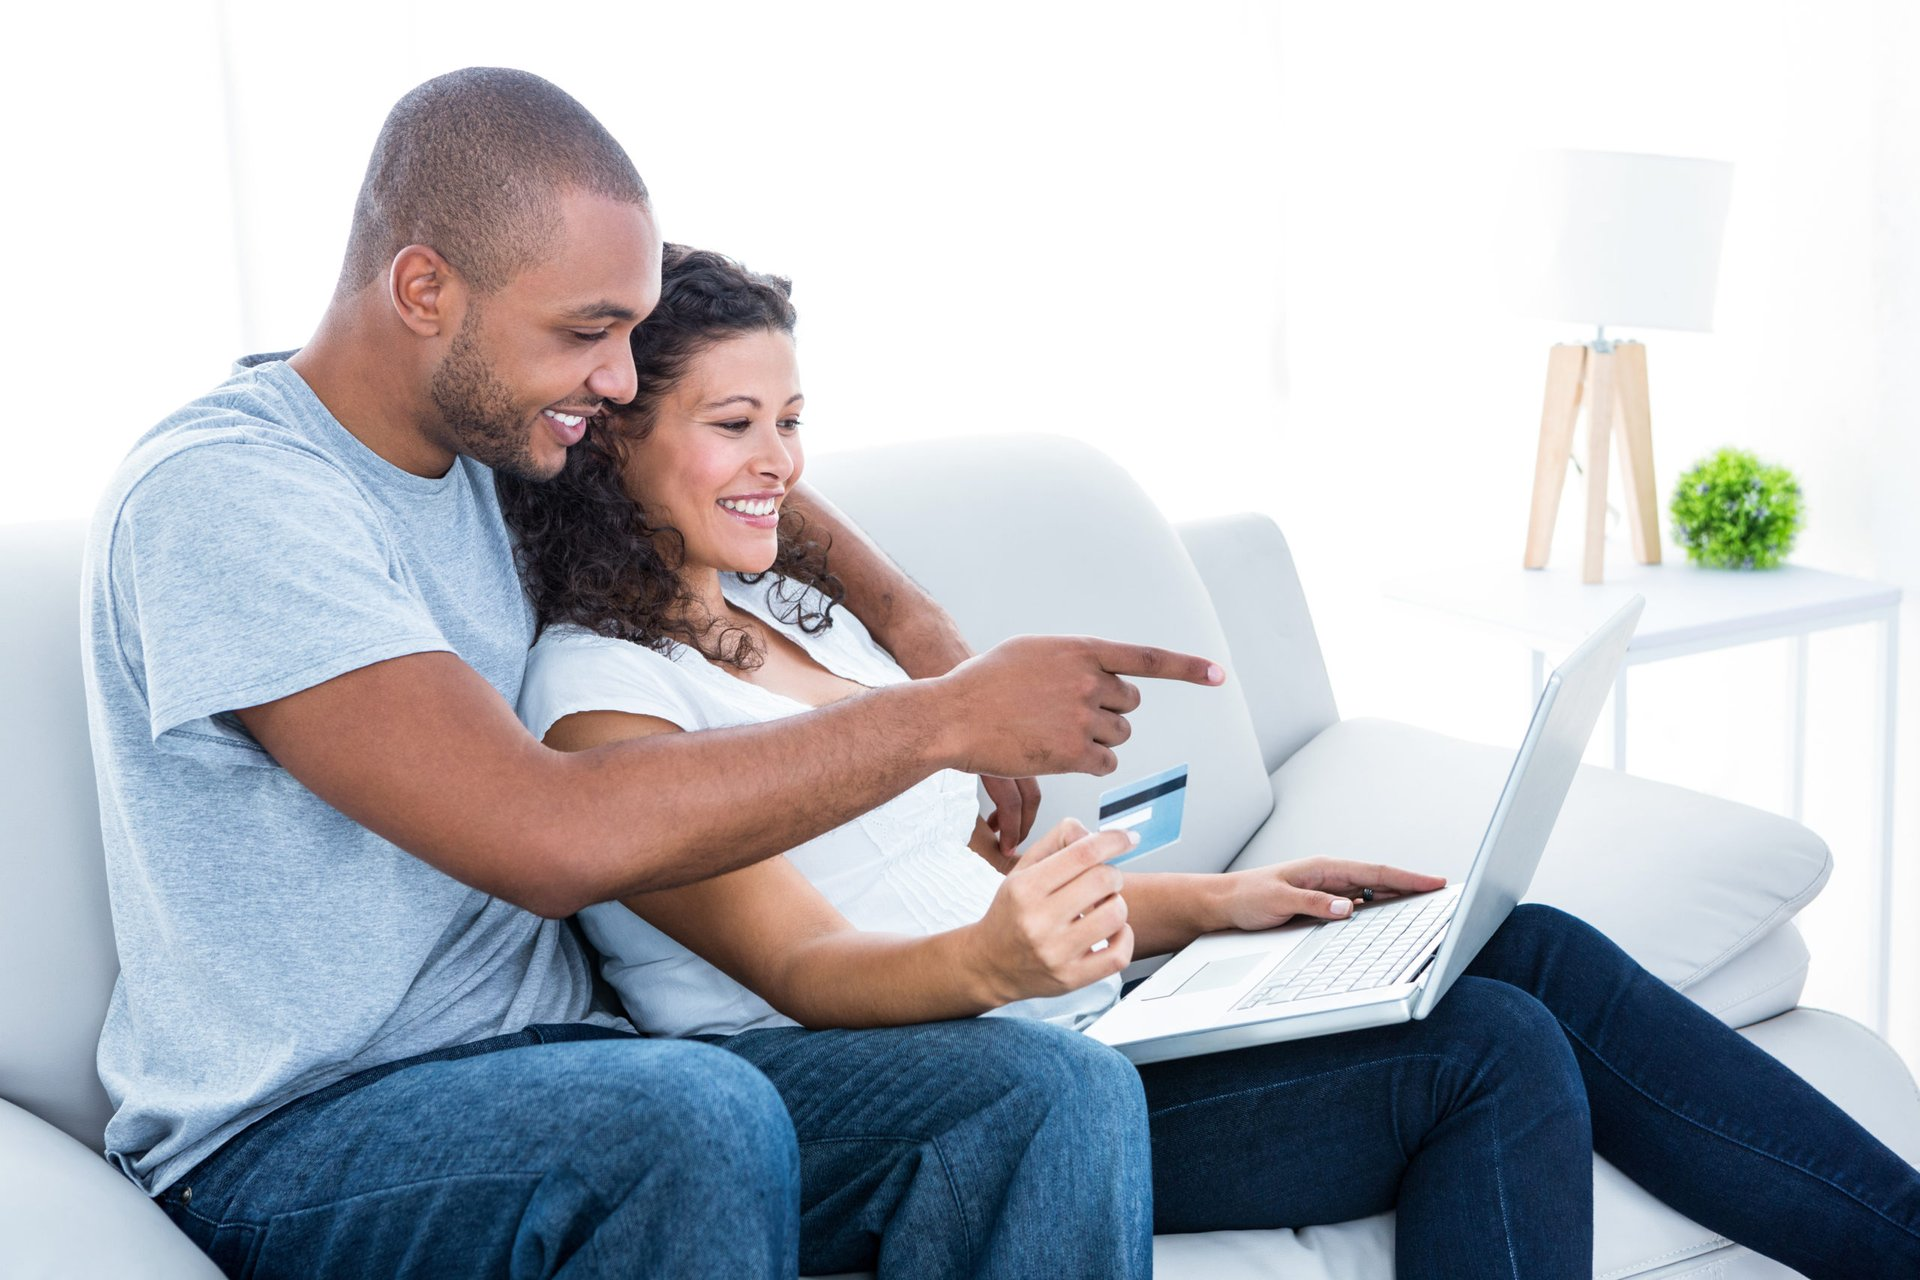 Couple on the couch with laptop and credit card spending their credit card rewards points